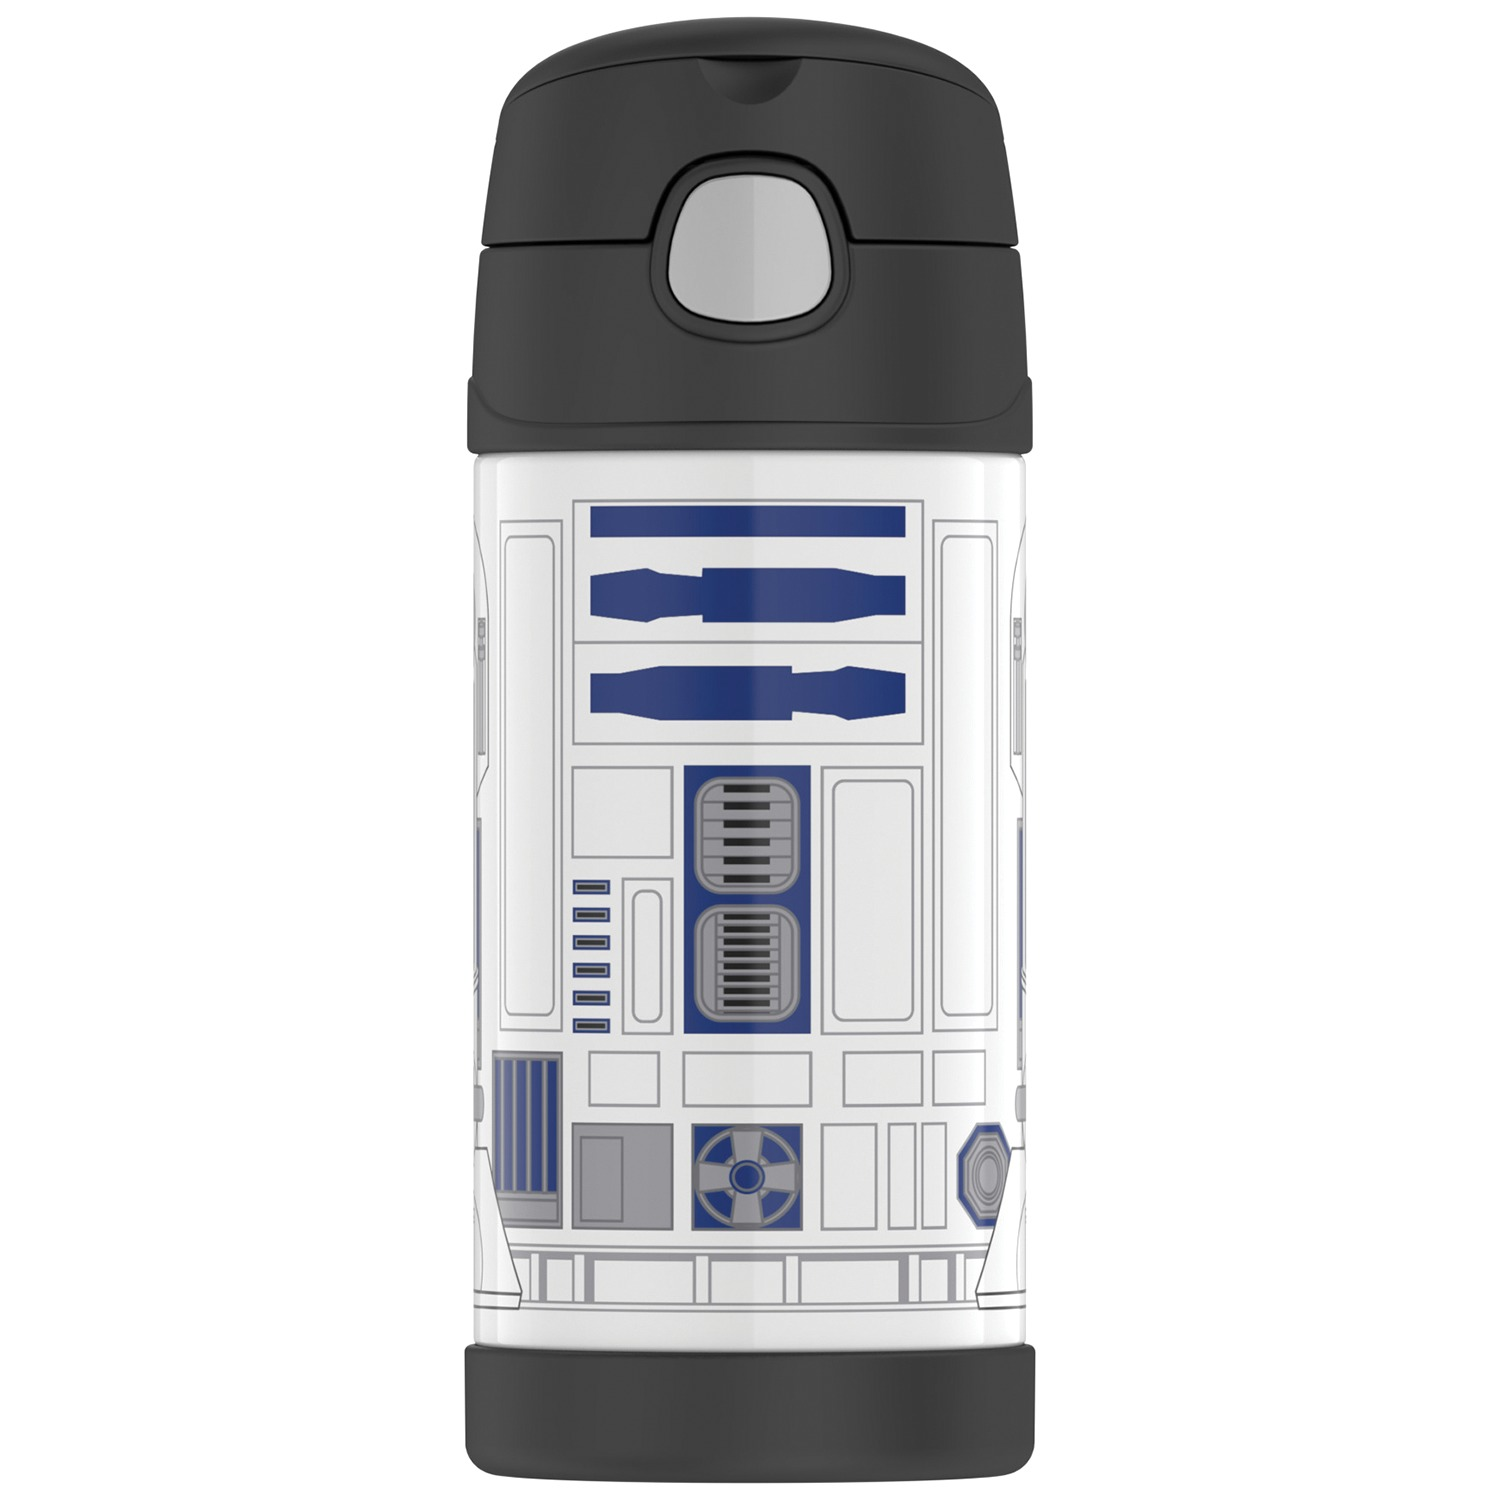 Star Wars Funtainer R2D2 12 oz Drink Container